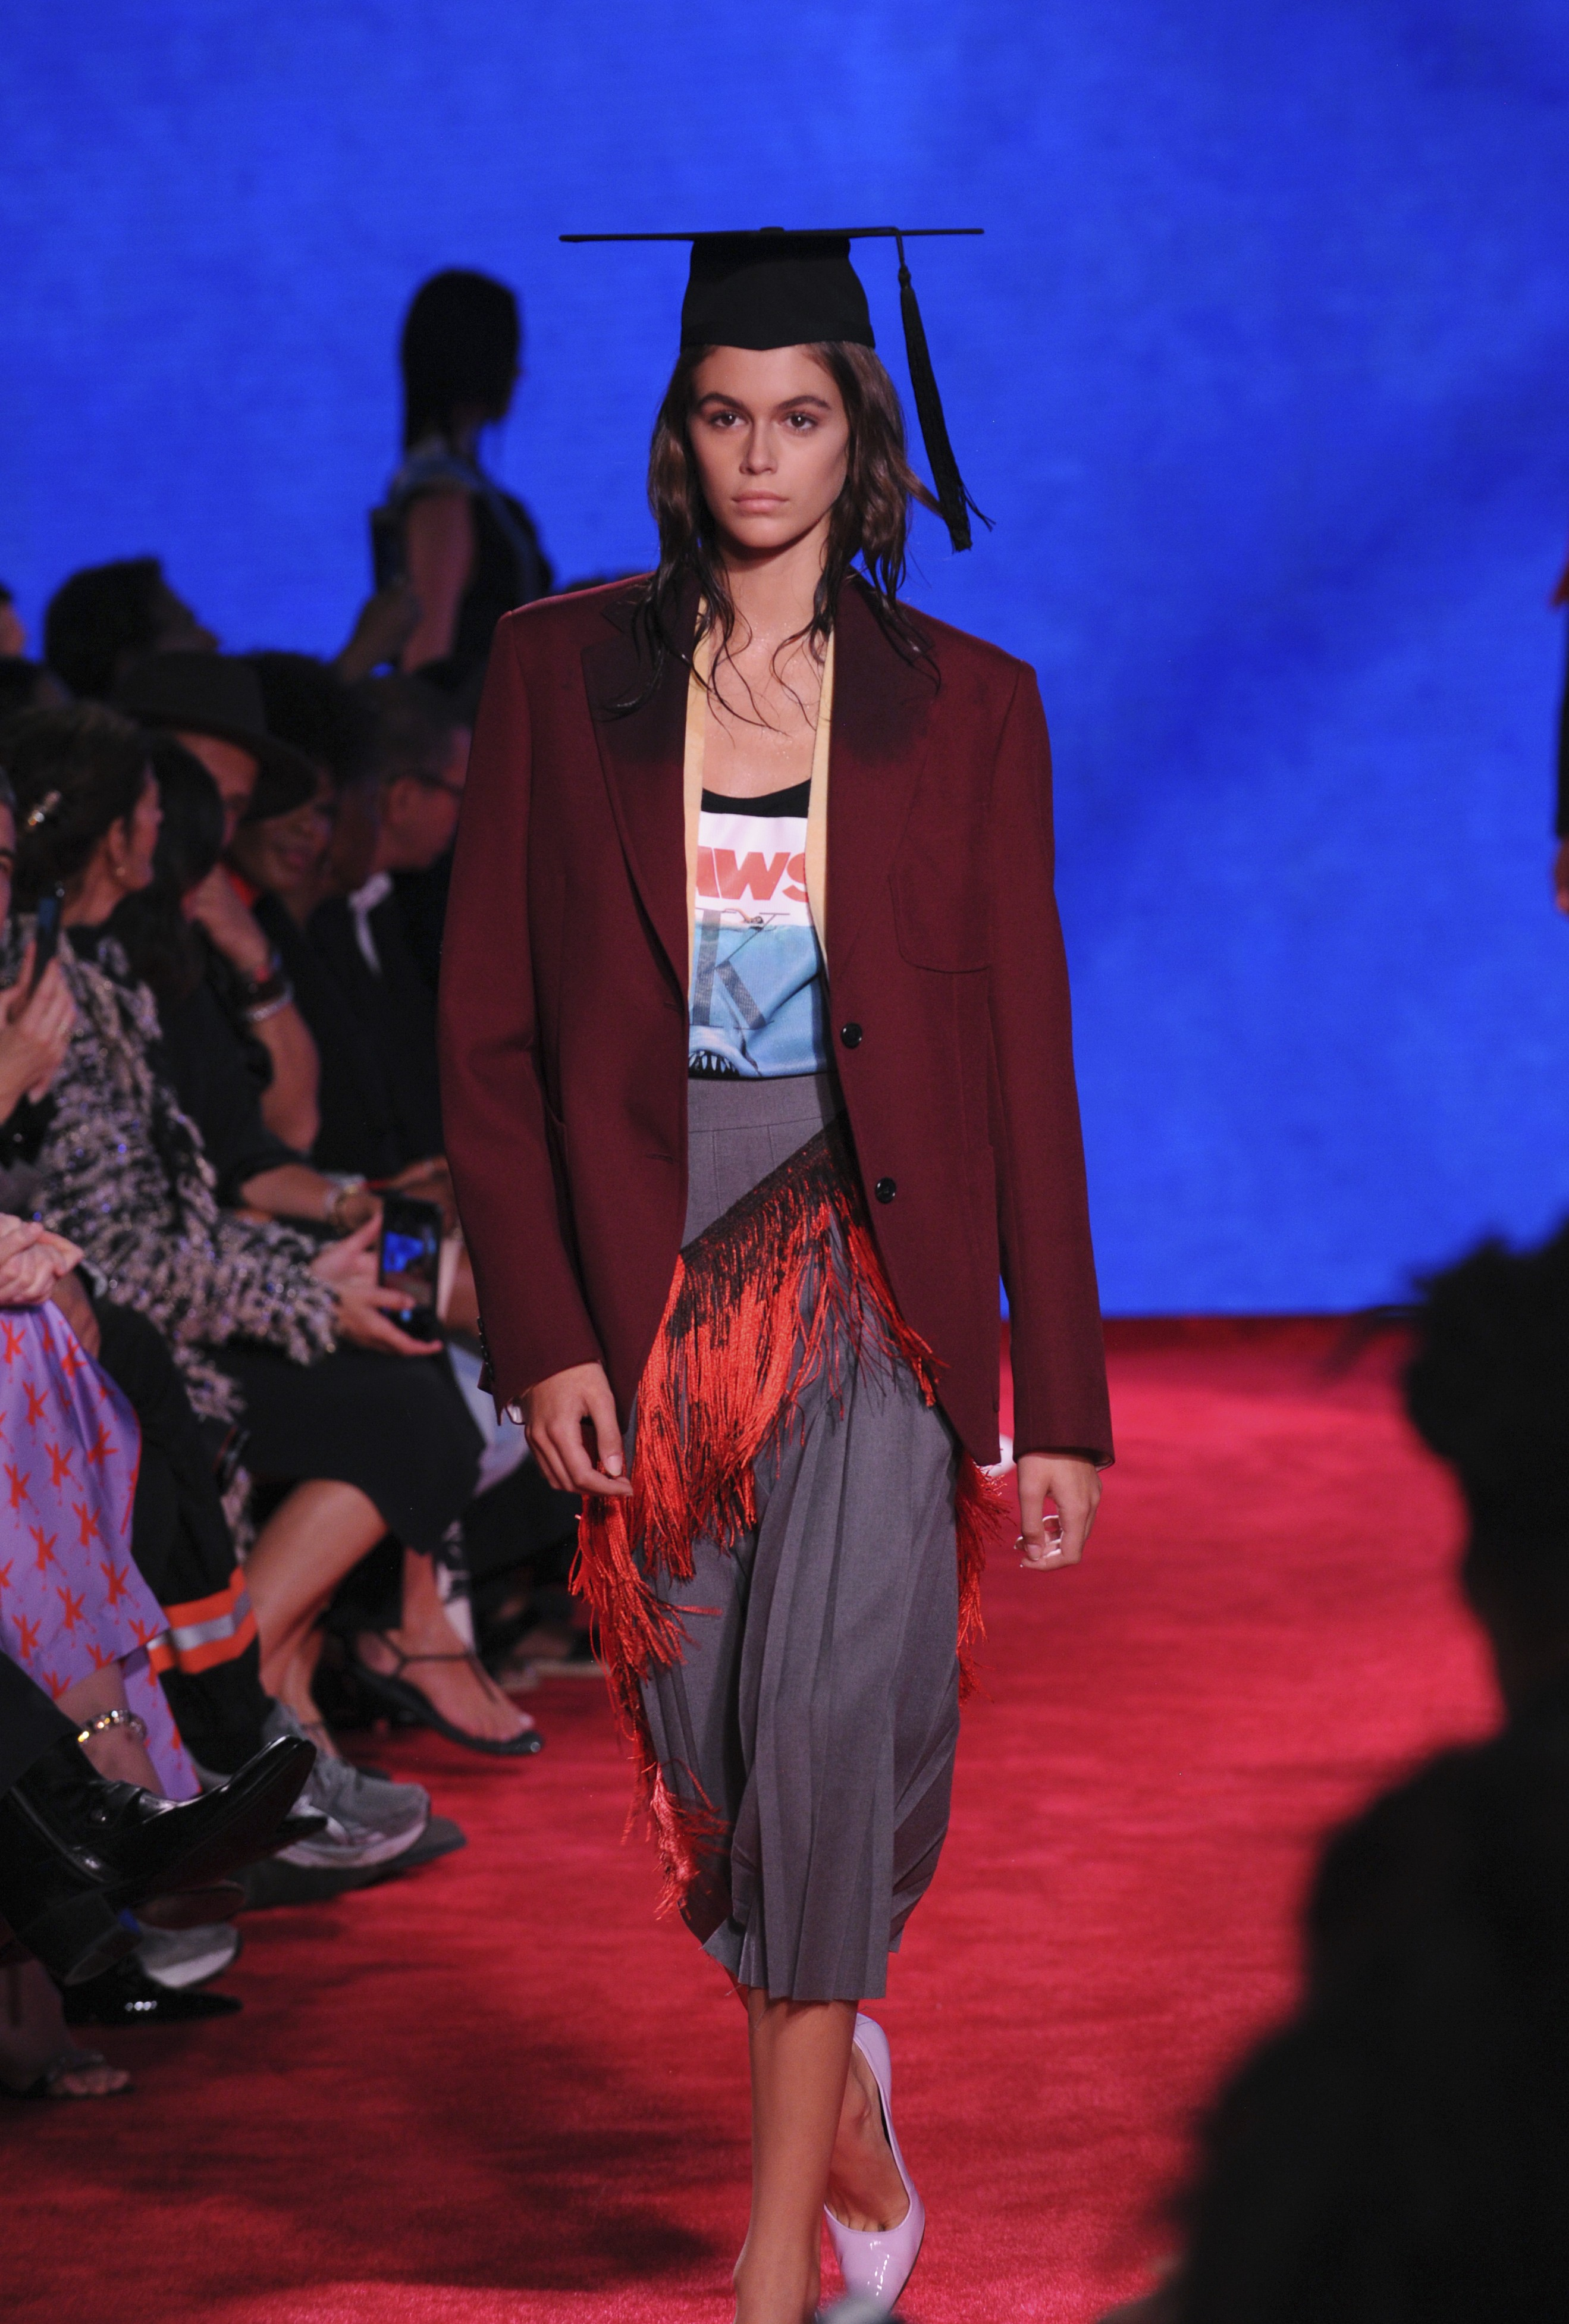 ce48f648 Raf Simons' Calvin Klein 205W39NYC show uses menacing 'Jaws' metaphor at  New York Fashion Week | South China Morning Post